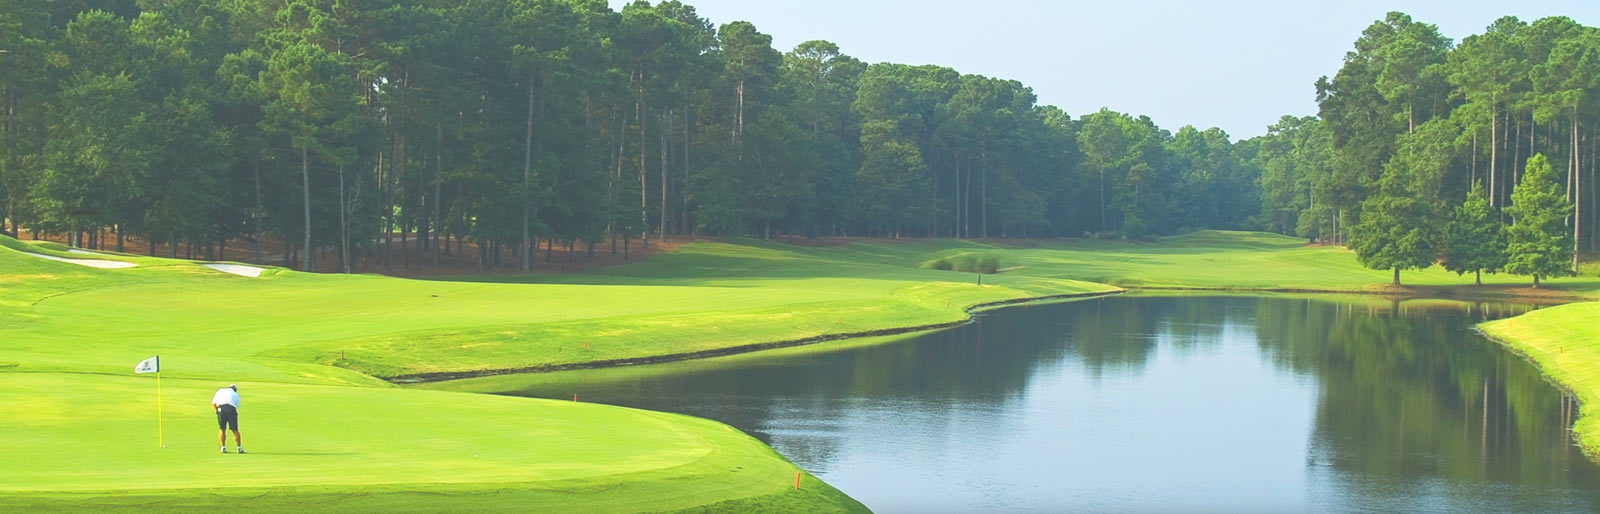 Golf course fairway, the green, a large pond, surrounded by trees on a partly cloudy summer day